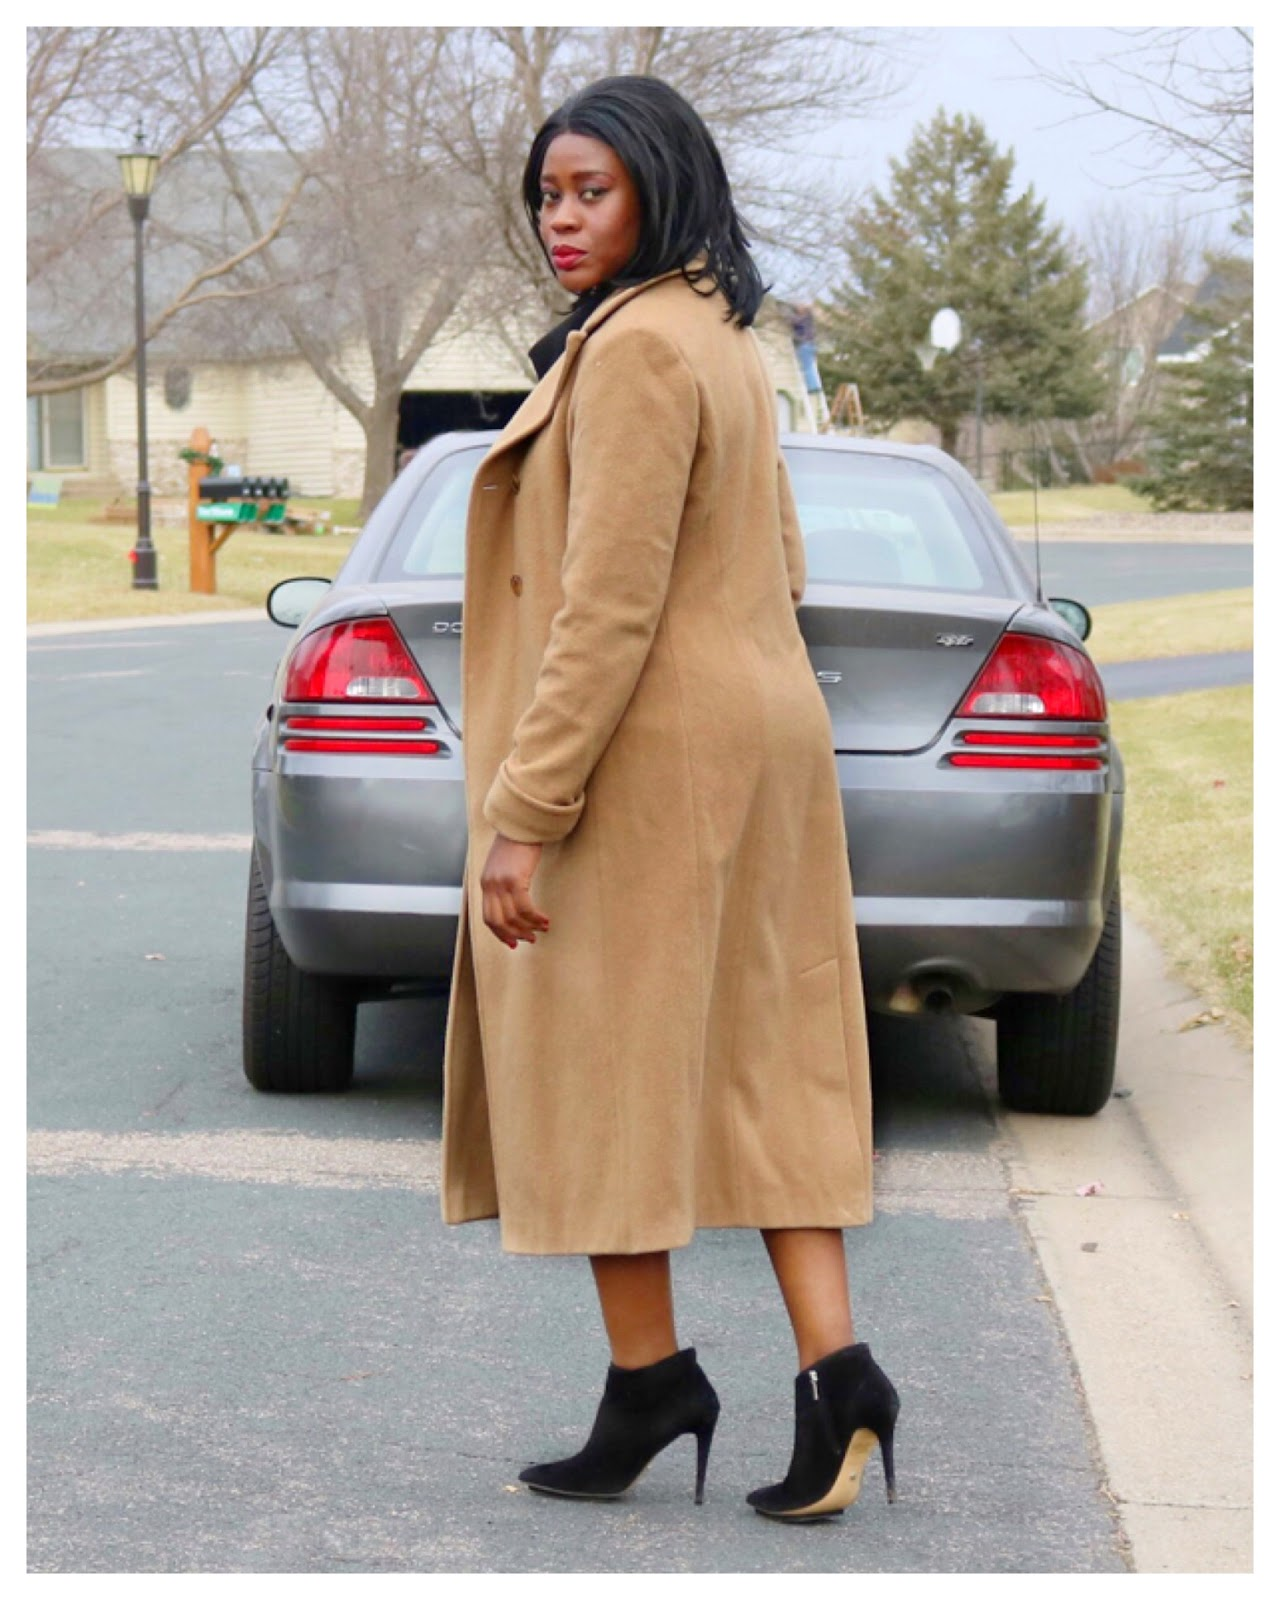 Fashion Beauty Zone: Beauty's Fashion Zone: Camel Color Coat + Black Ankle Boots